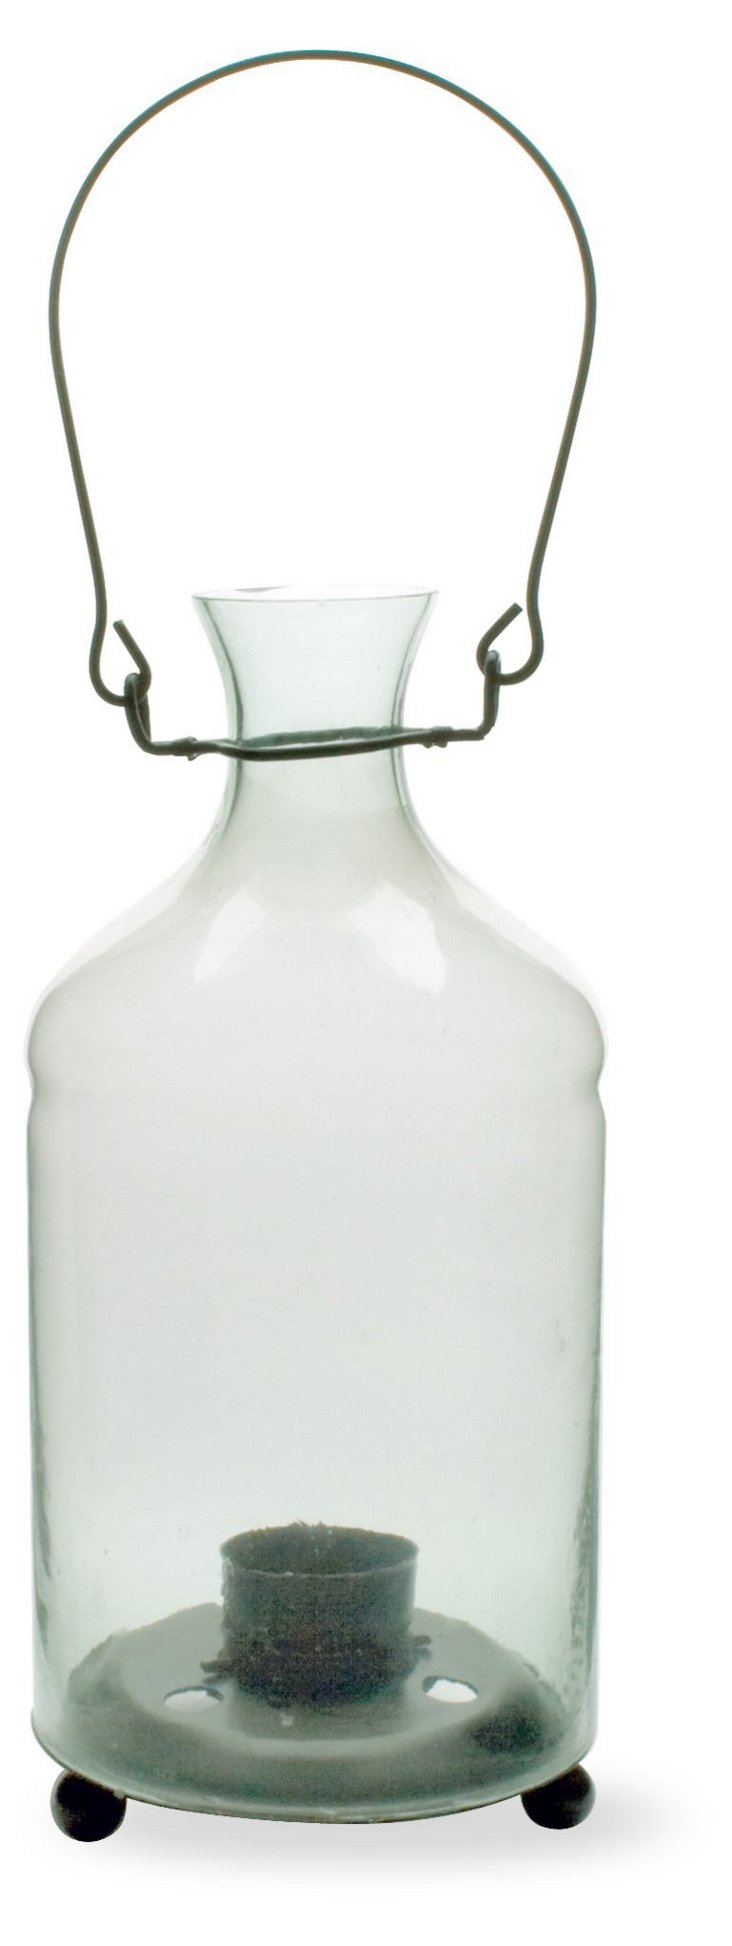 "10"" Hanging Candle Bottle"